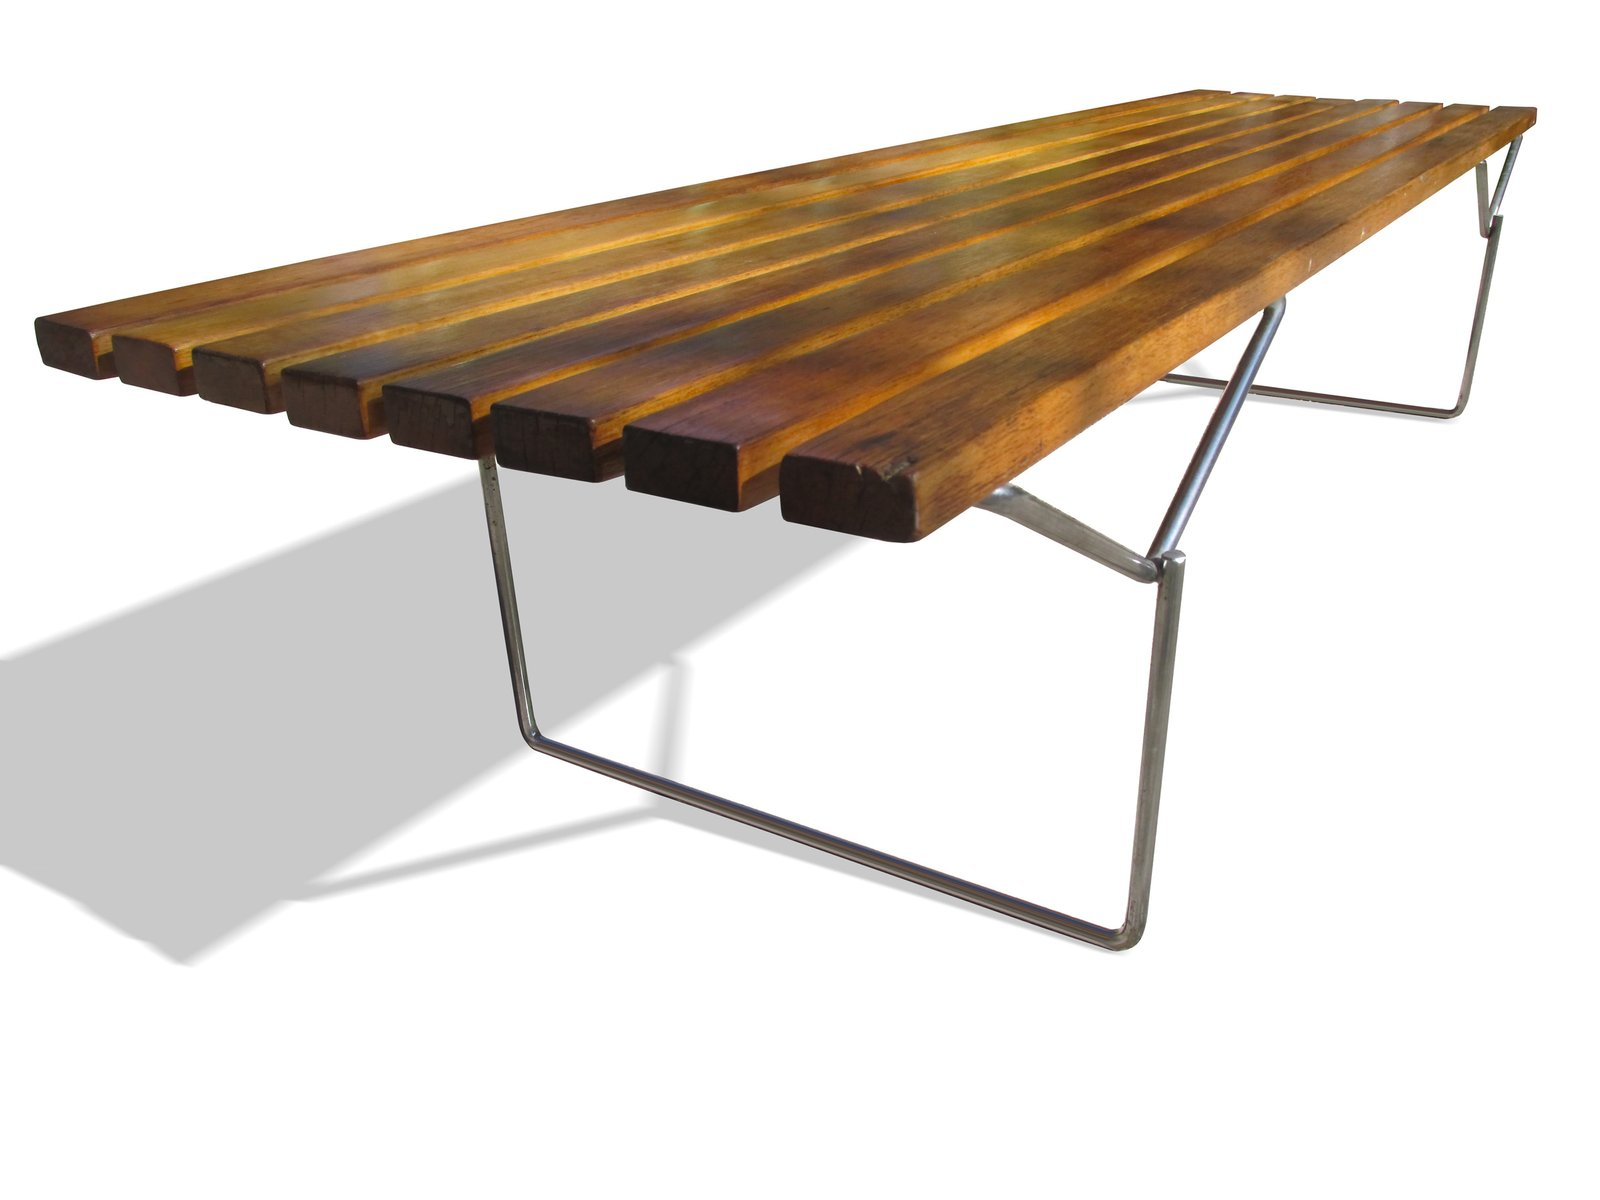 Oak Bench By Harry Bertoia For Knoll 1952 For Sale At Pamono